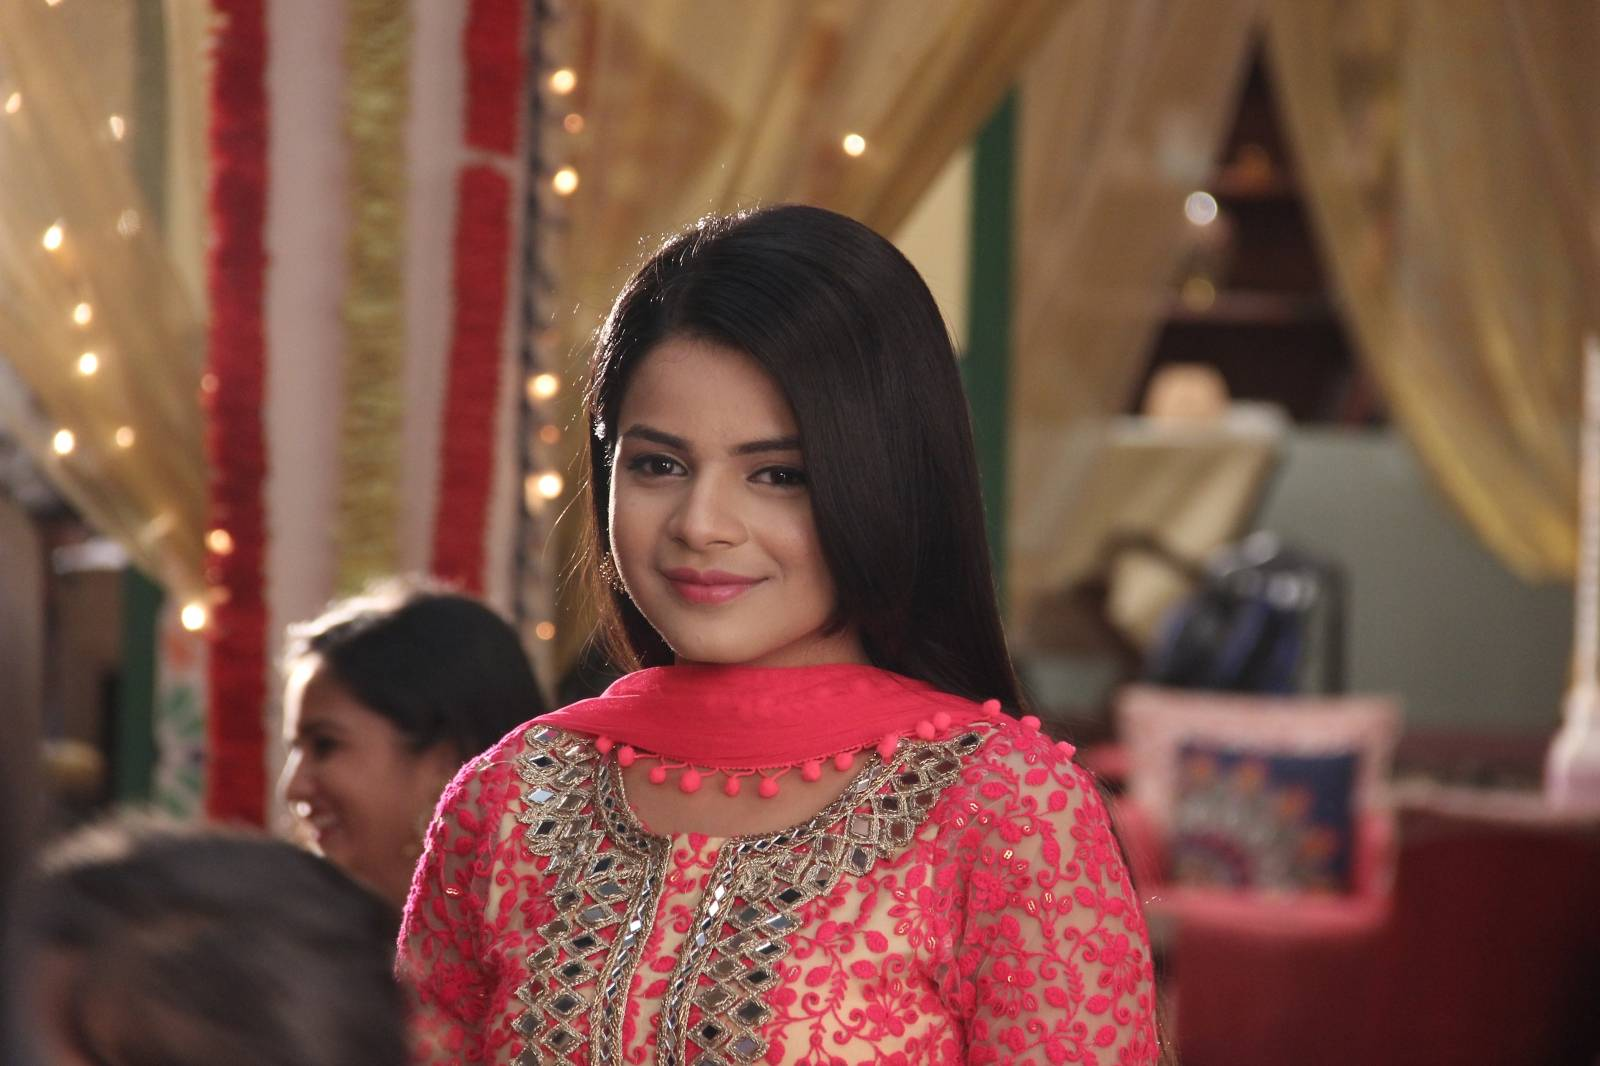 Rana Order To Kill Thapki! Thapki Pyaar Ki 14th March 2016 Episode Written Updates